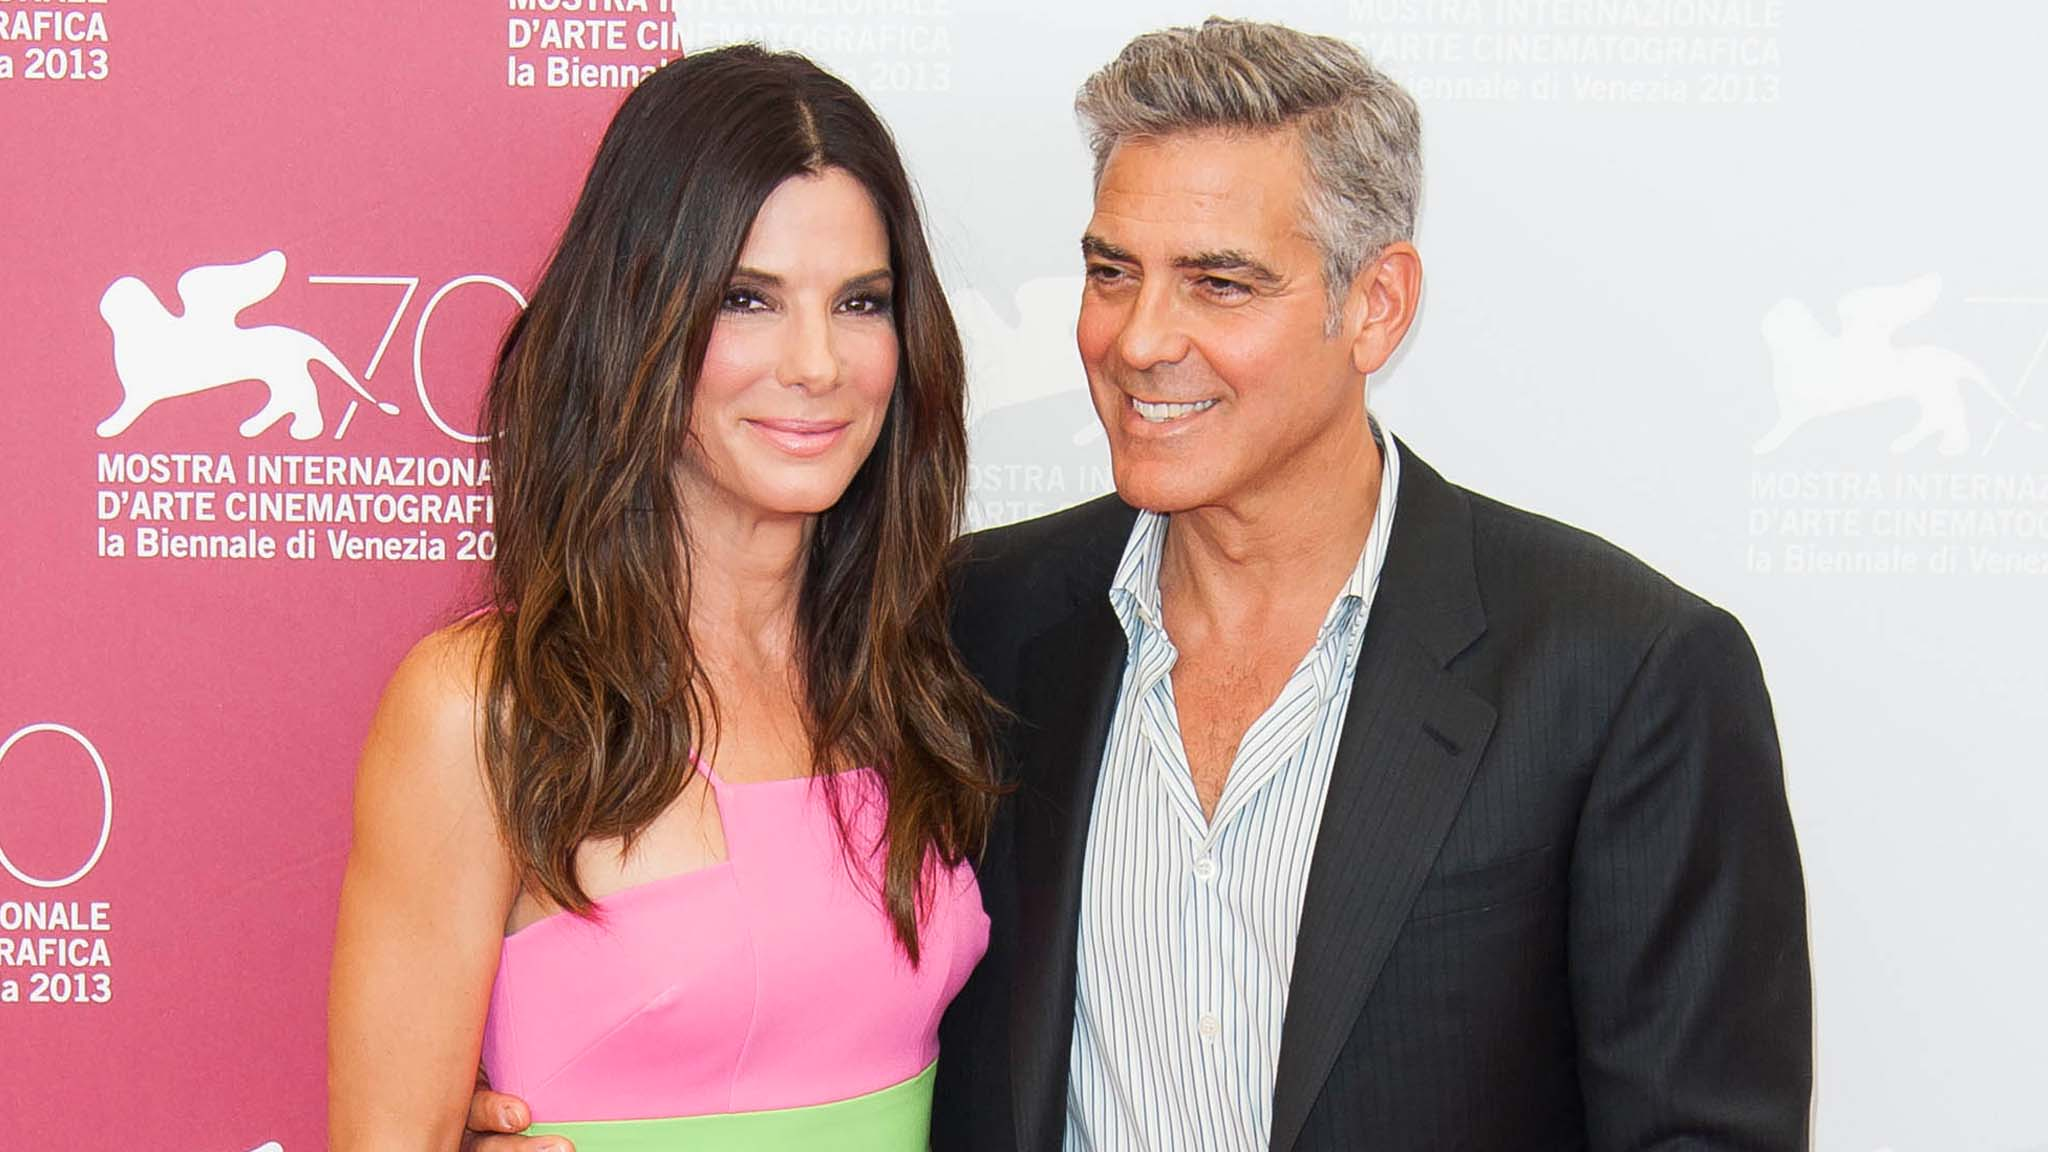 Sandra Bullock and George Clooney at the Venice Film Festival in late August (Photo: Startraks)